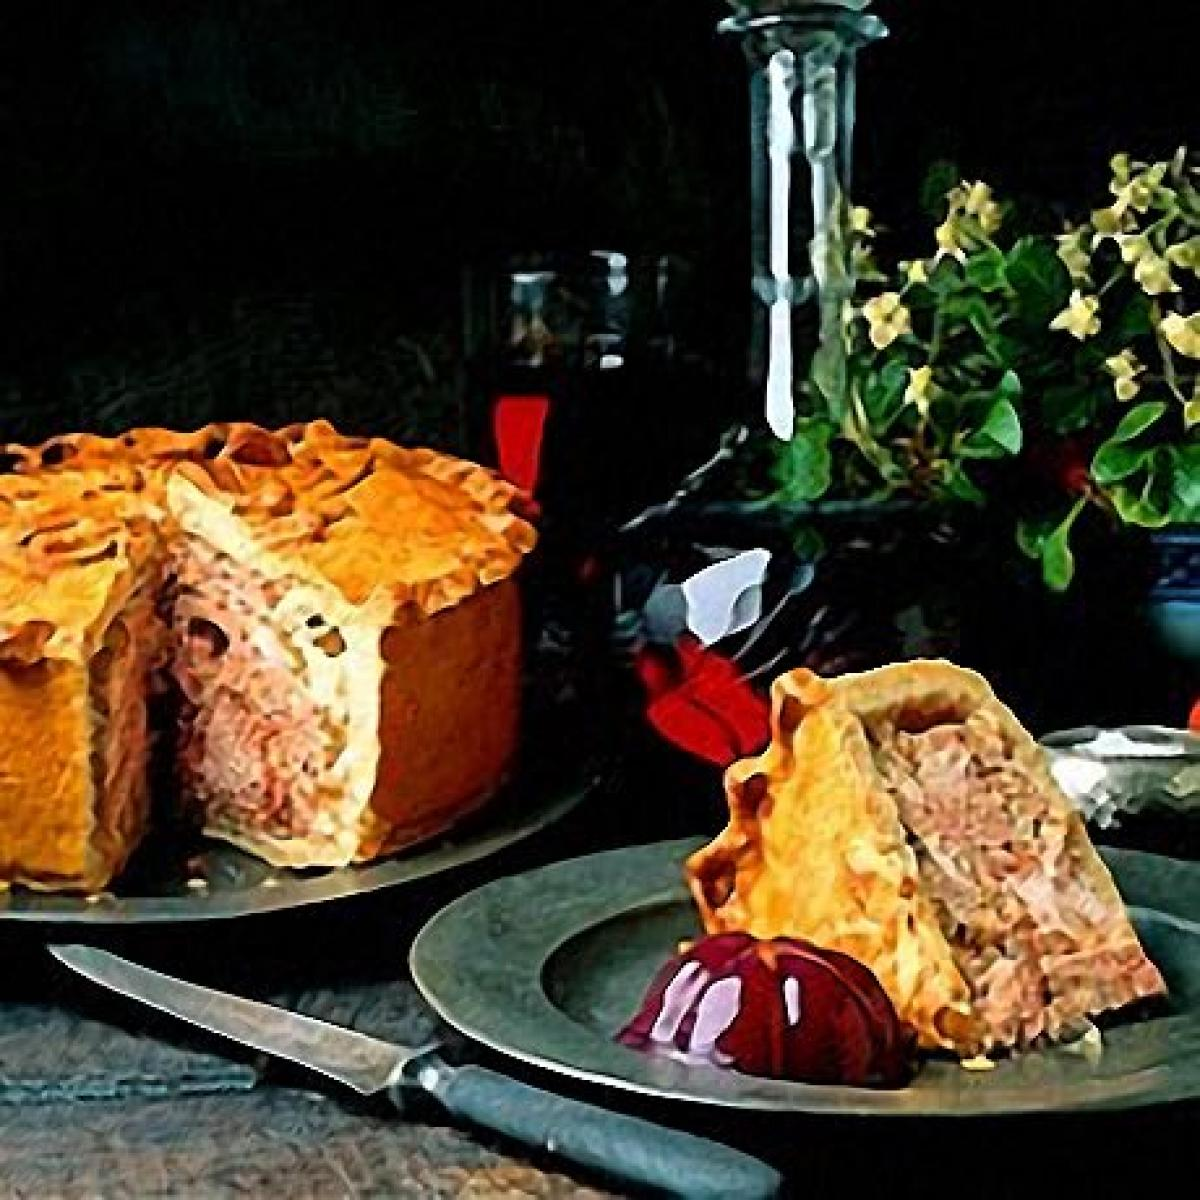 A picture of Delia's Old-fashioned Raised Game Pie recipe